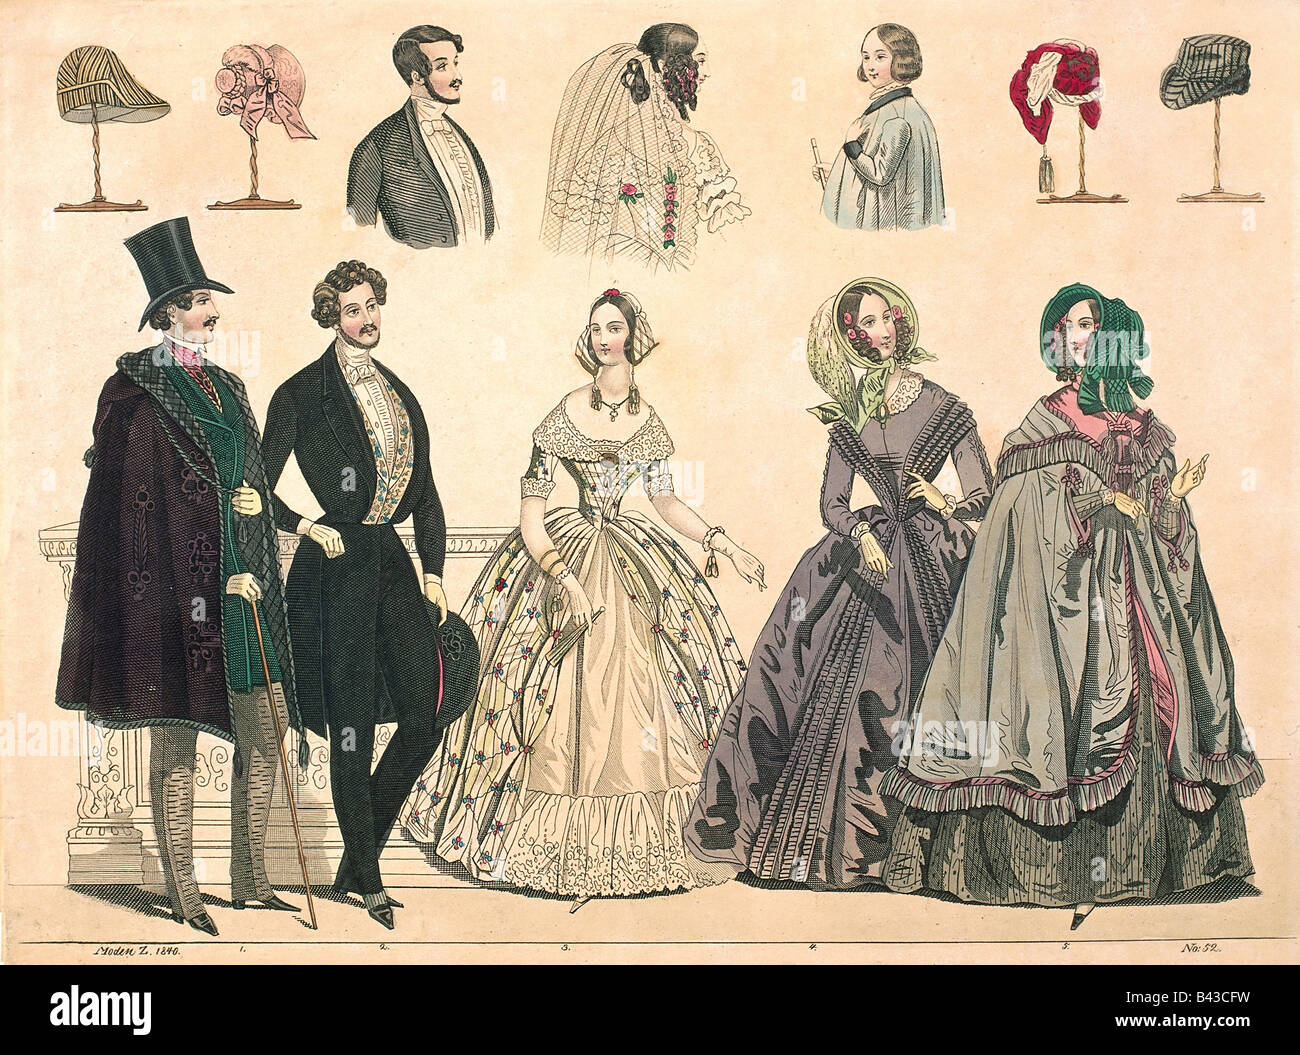 19th century england Posted in 19th century, history, lifestyle, literature, people, victorian, tagged  clothing, dandy, england, germany, history, nineteenth century, prince puckler,  travel.